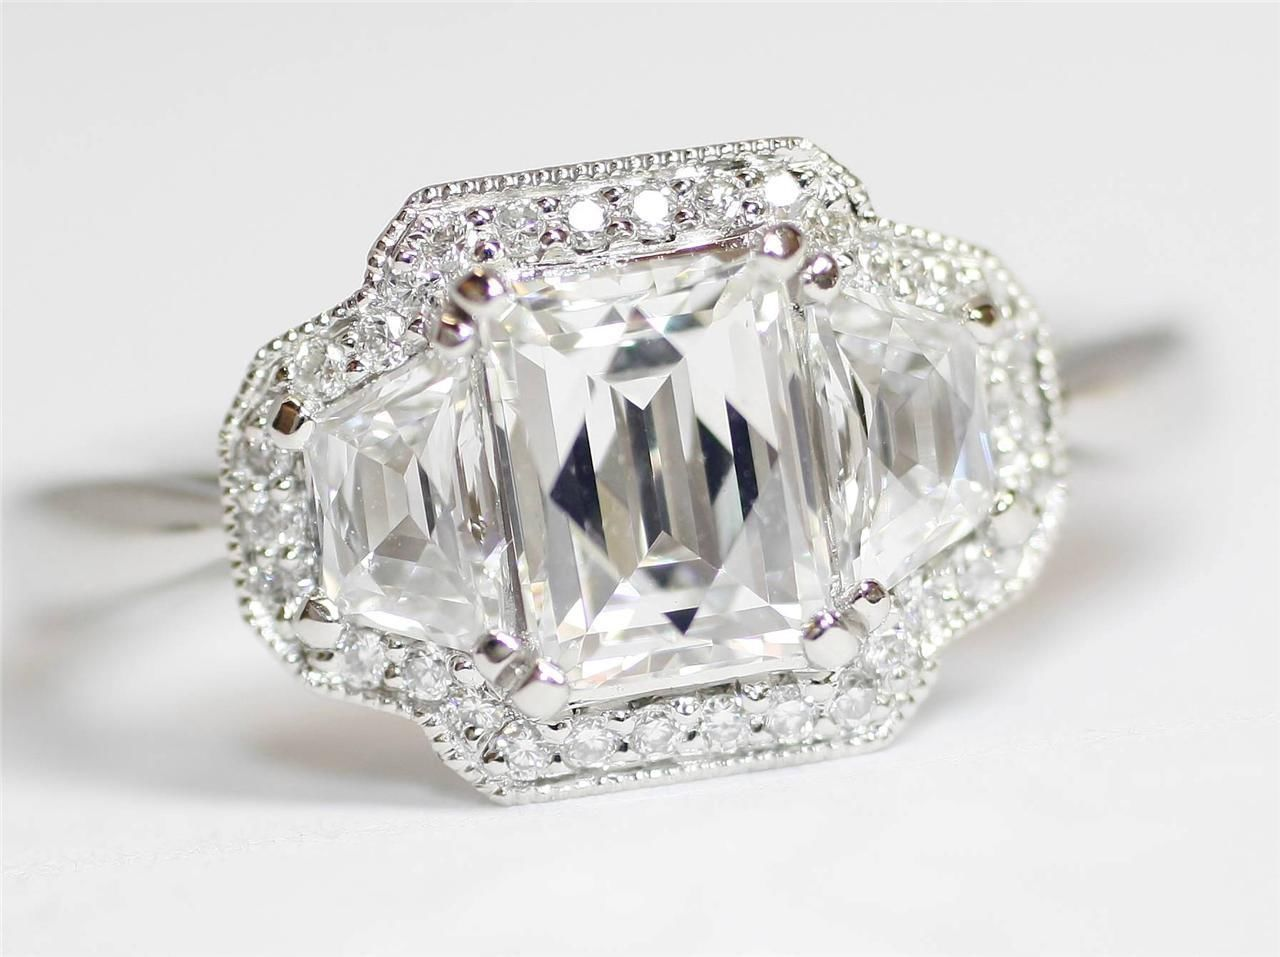 Sell a Tycoon Diamond Ring